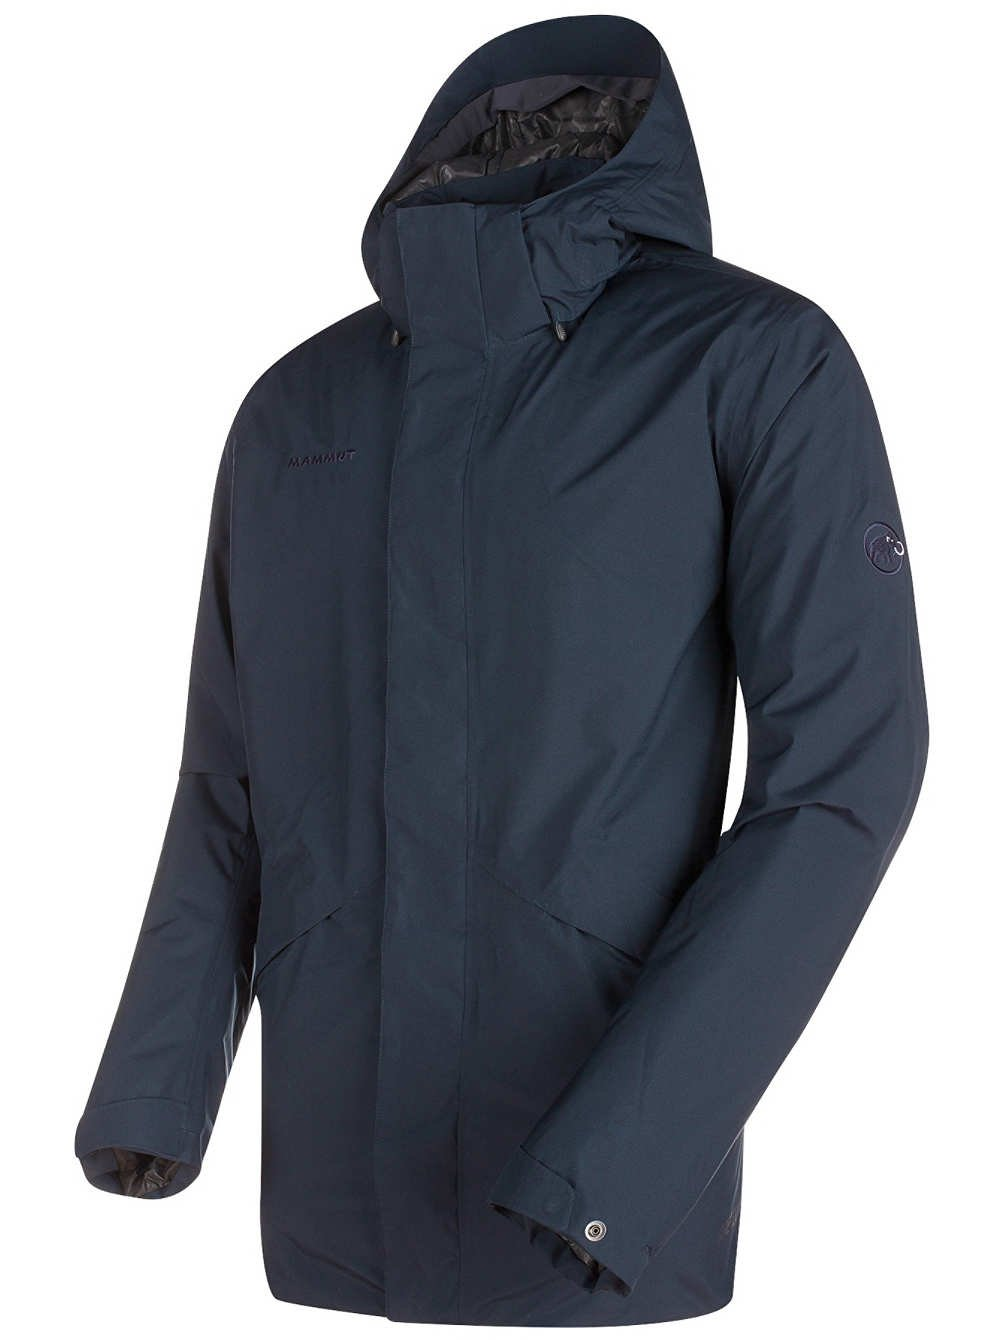 Rosag HS Thermo Jacket Men